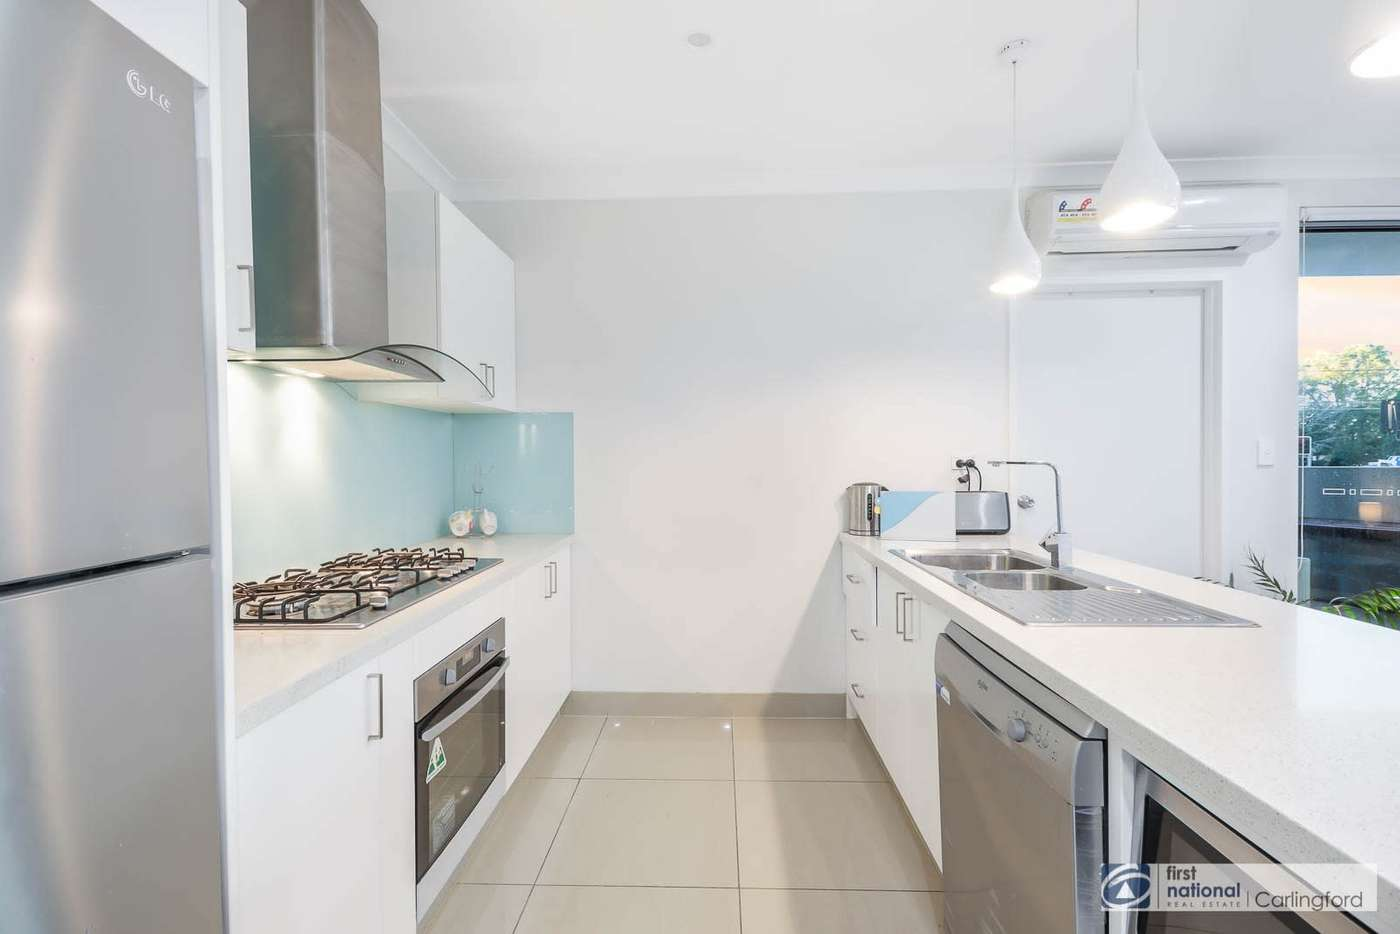 Main view of Homely apartment listing, 10/239-243 Carlingford Road, Carlingford NSW 2118